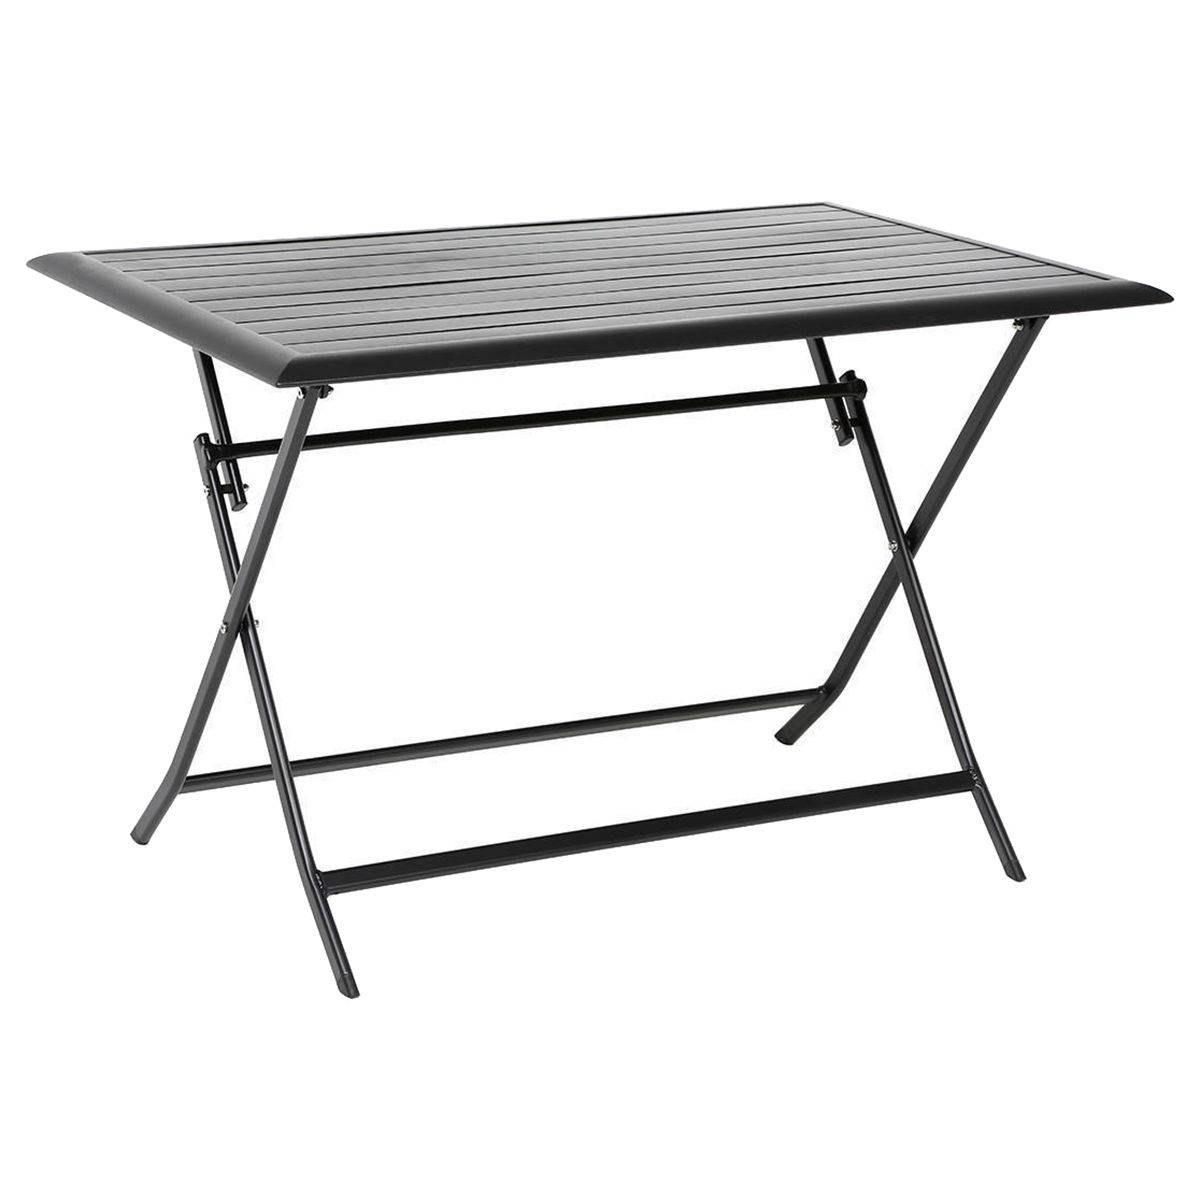 Table Terrasse Pliante Table De Terrasse Pliante Rectangulaire Azua Noire